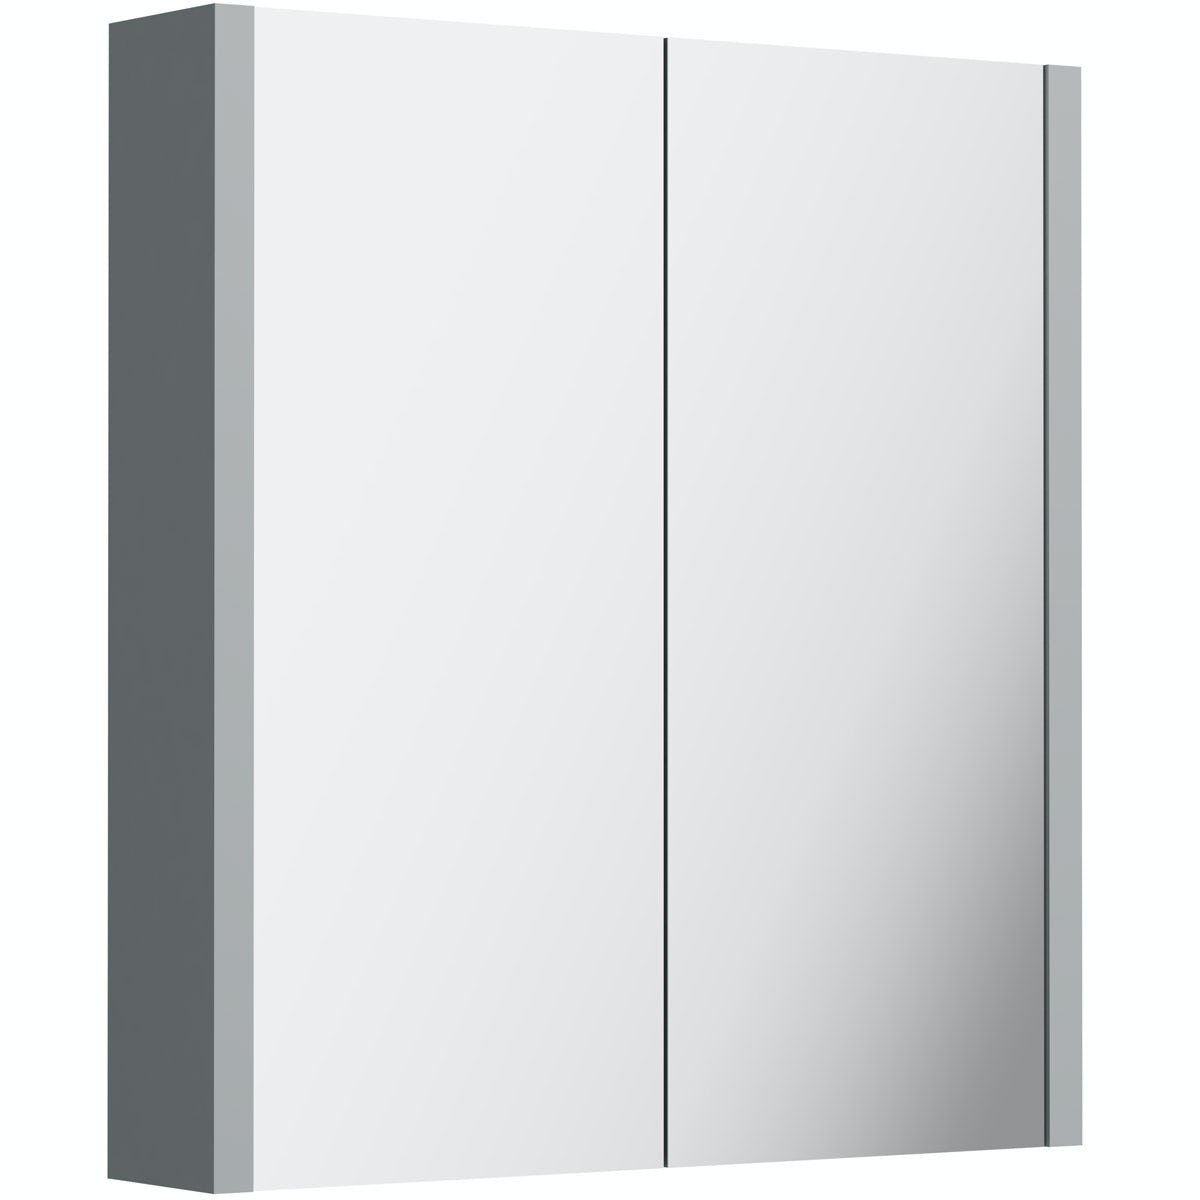 Orchard Derwent stone grey 2 door mirror cabinet